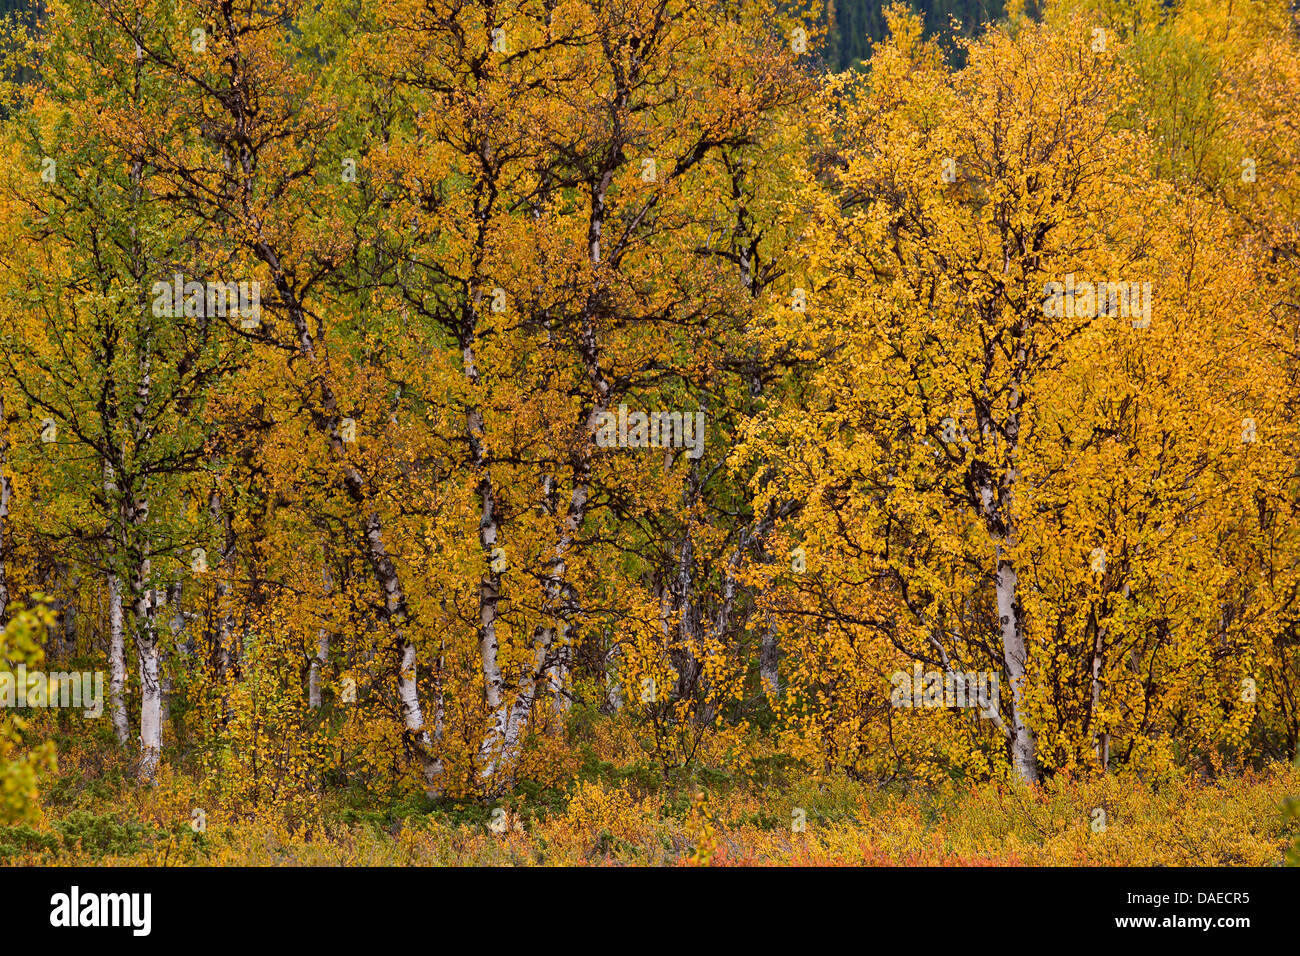 downy birch (Betula pubescens), downy birches in fall , Sweden, Lapland, Sarek National Park, Norrbottens Laen - Stock Image